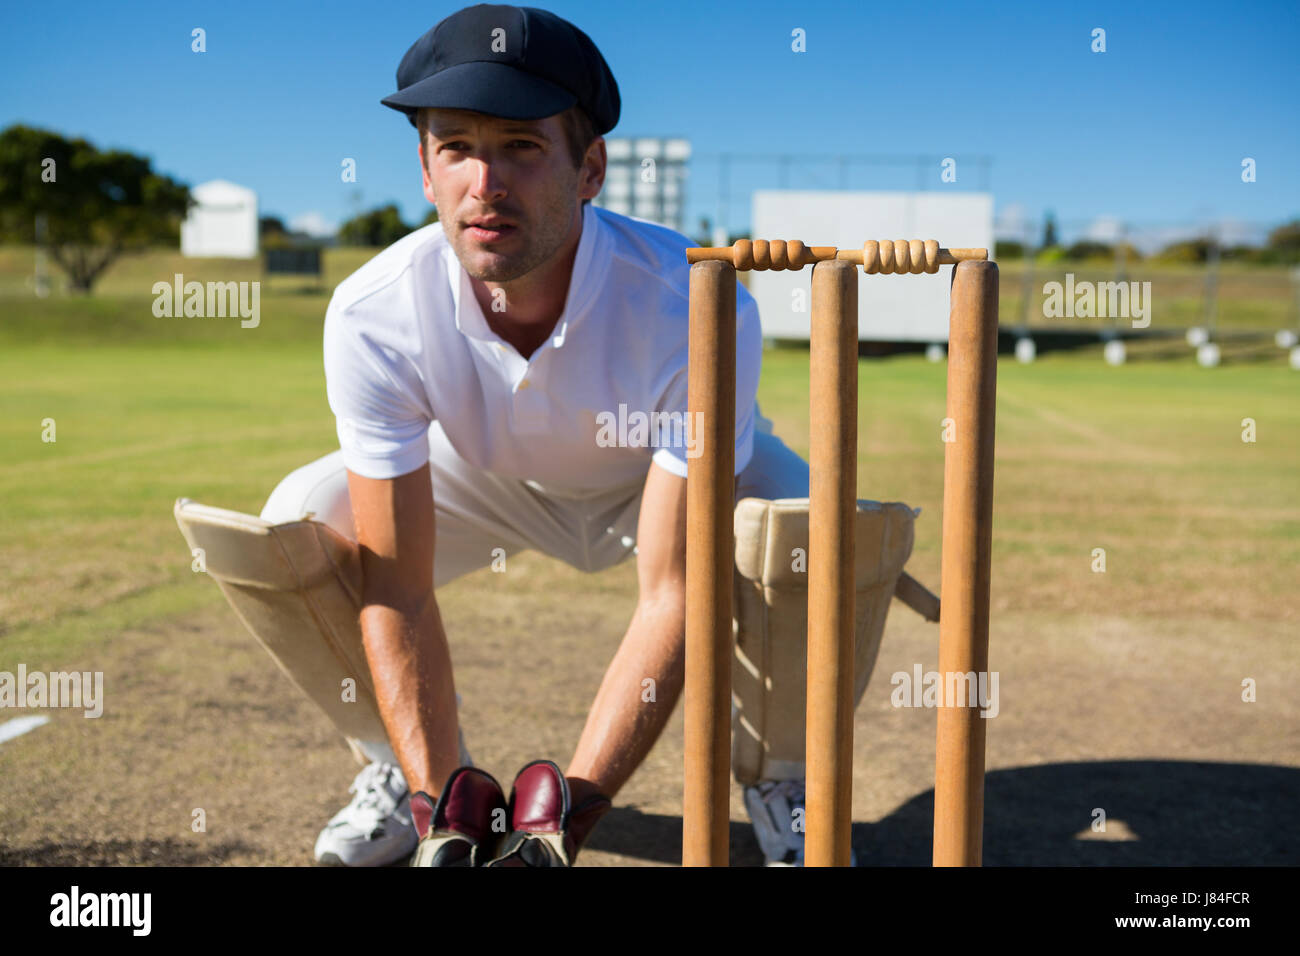 Wicket keeper crouching by stumps during match on sunny day - Stock Image